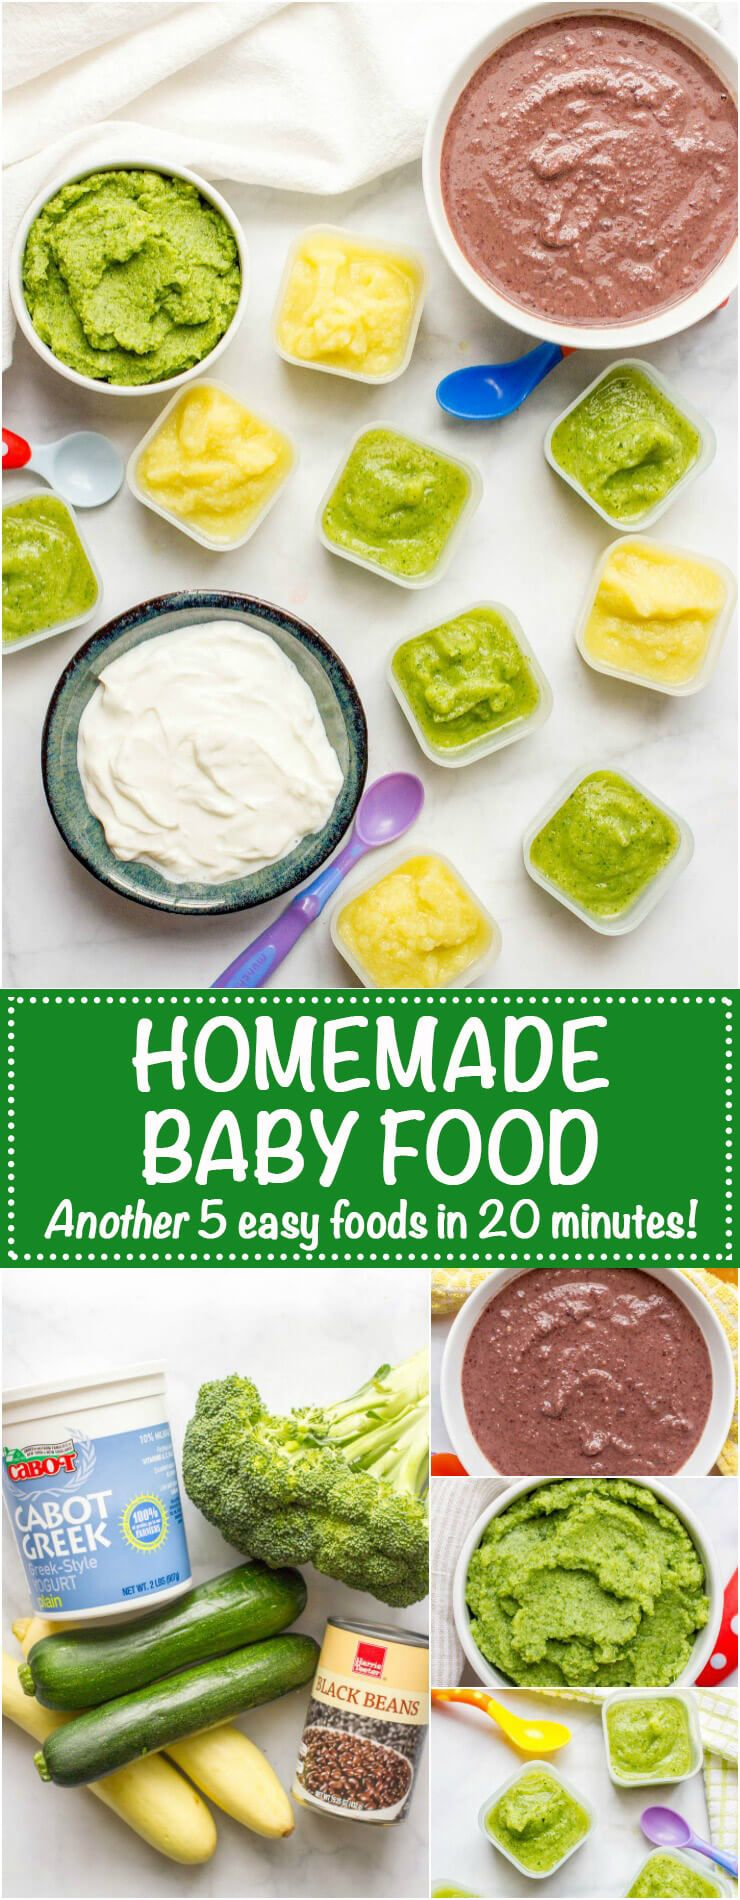 Homemade baby food broccoli zucchini squash black beans and homemade baby food broccoli zucchini squash black beans and yogurt receta forumfinder Image collections